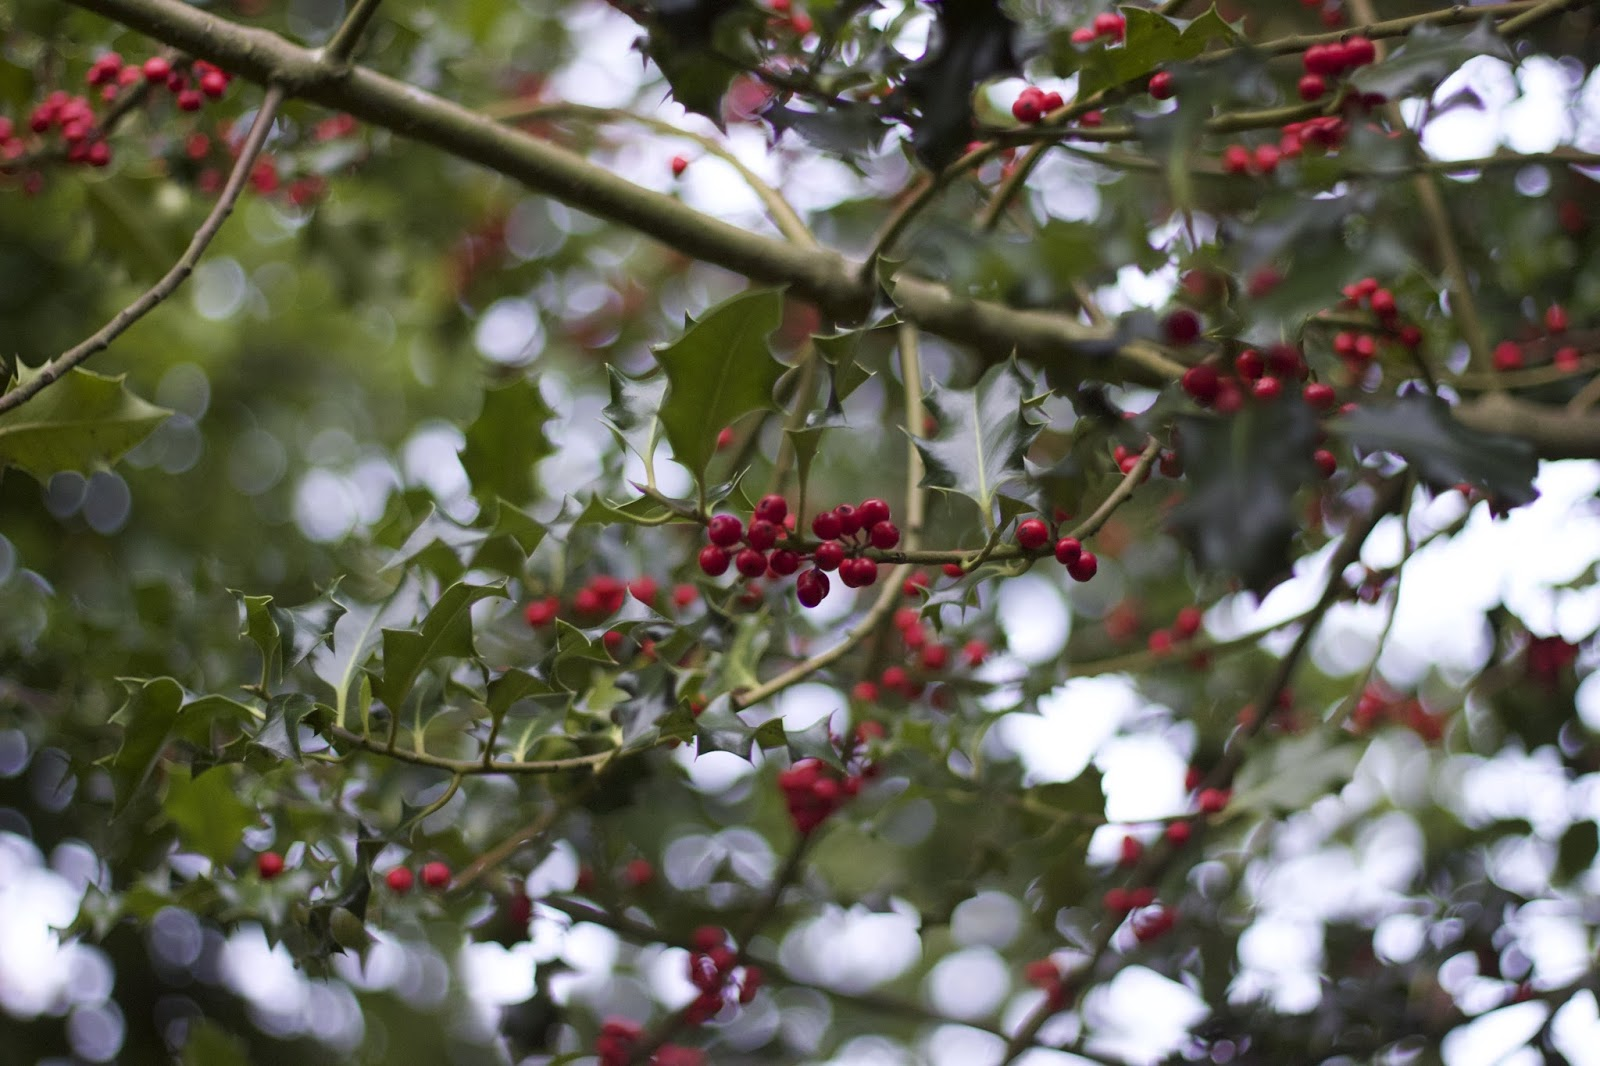 Holly, Berries, Autumn, Belper, Katie Writes, Blog, Lifestyle Bloggers UK, Seasons,